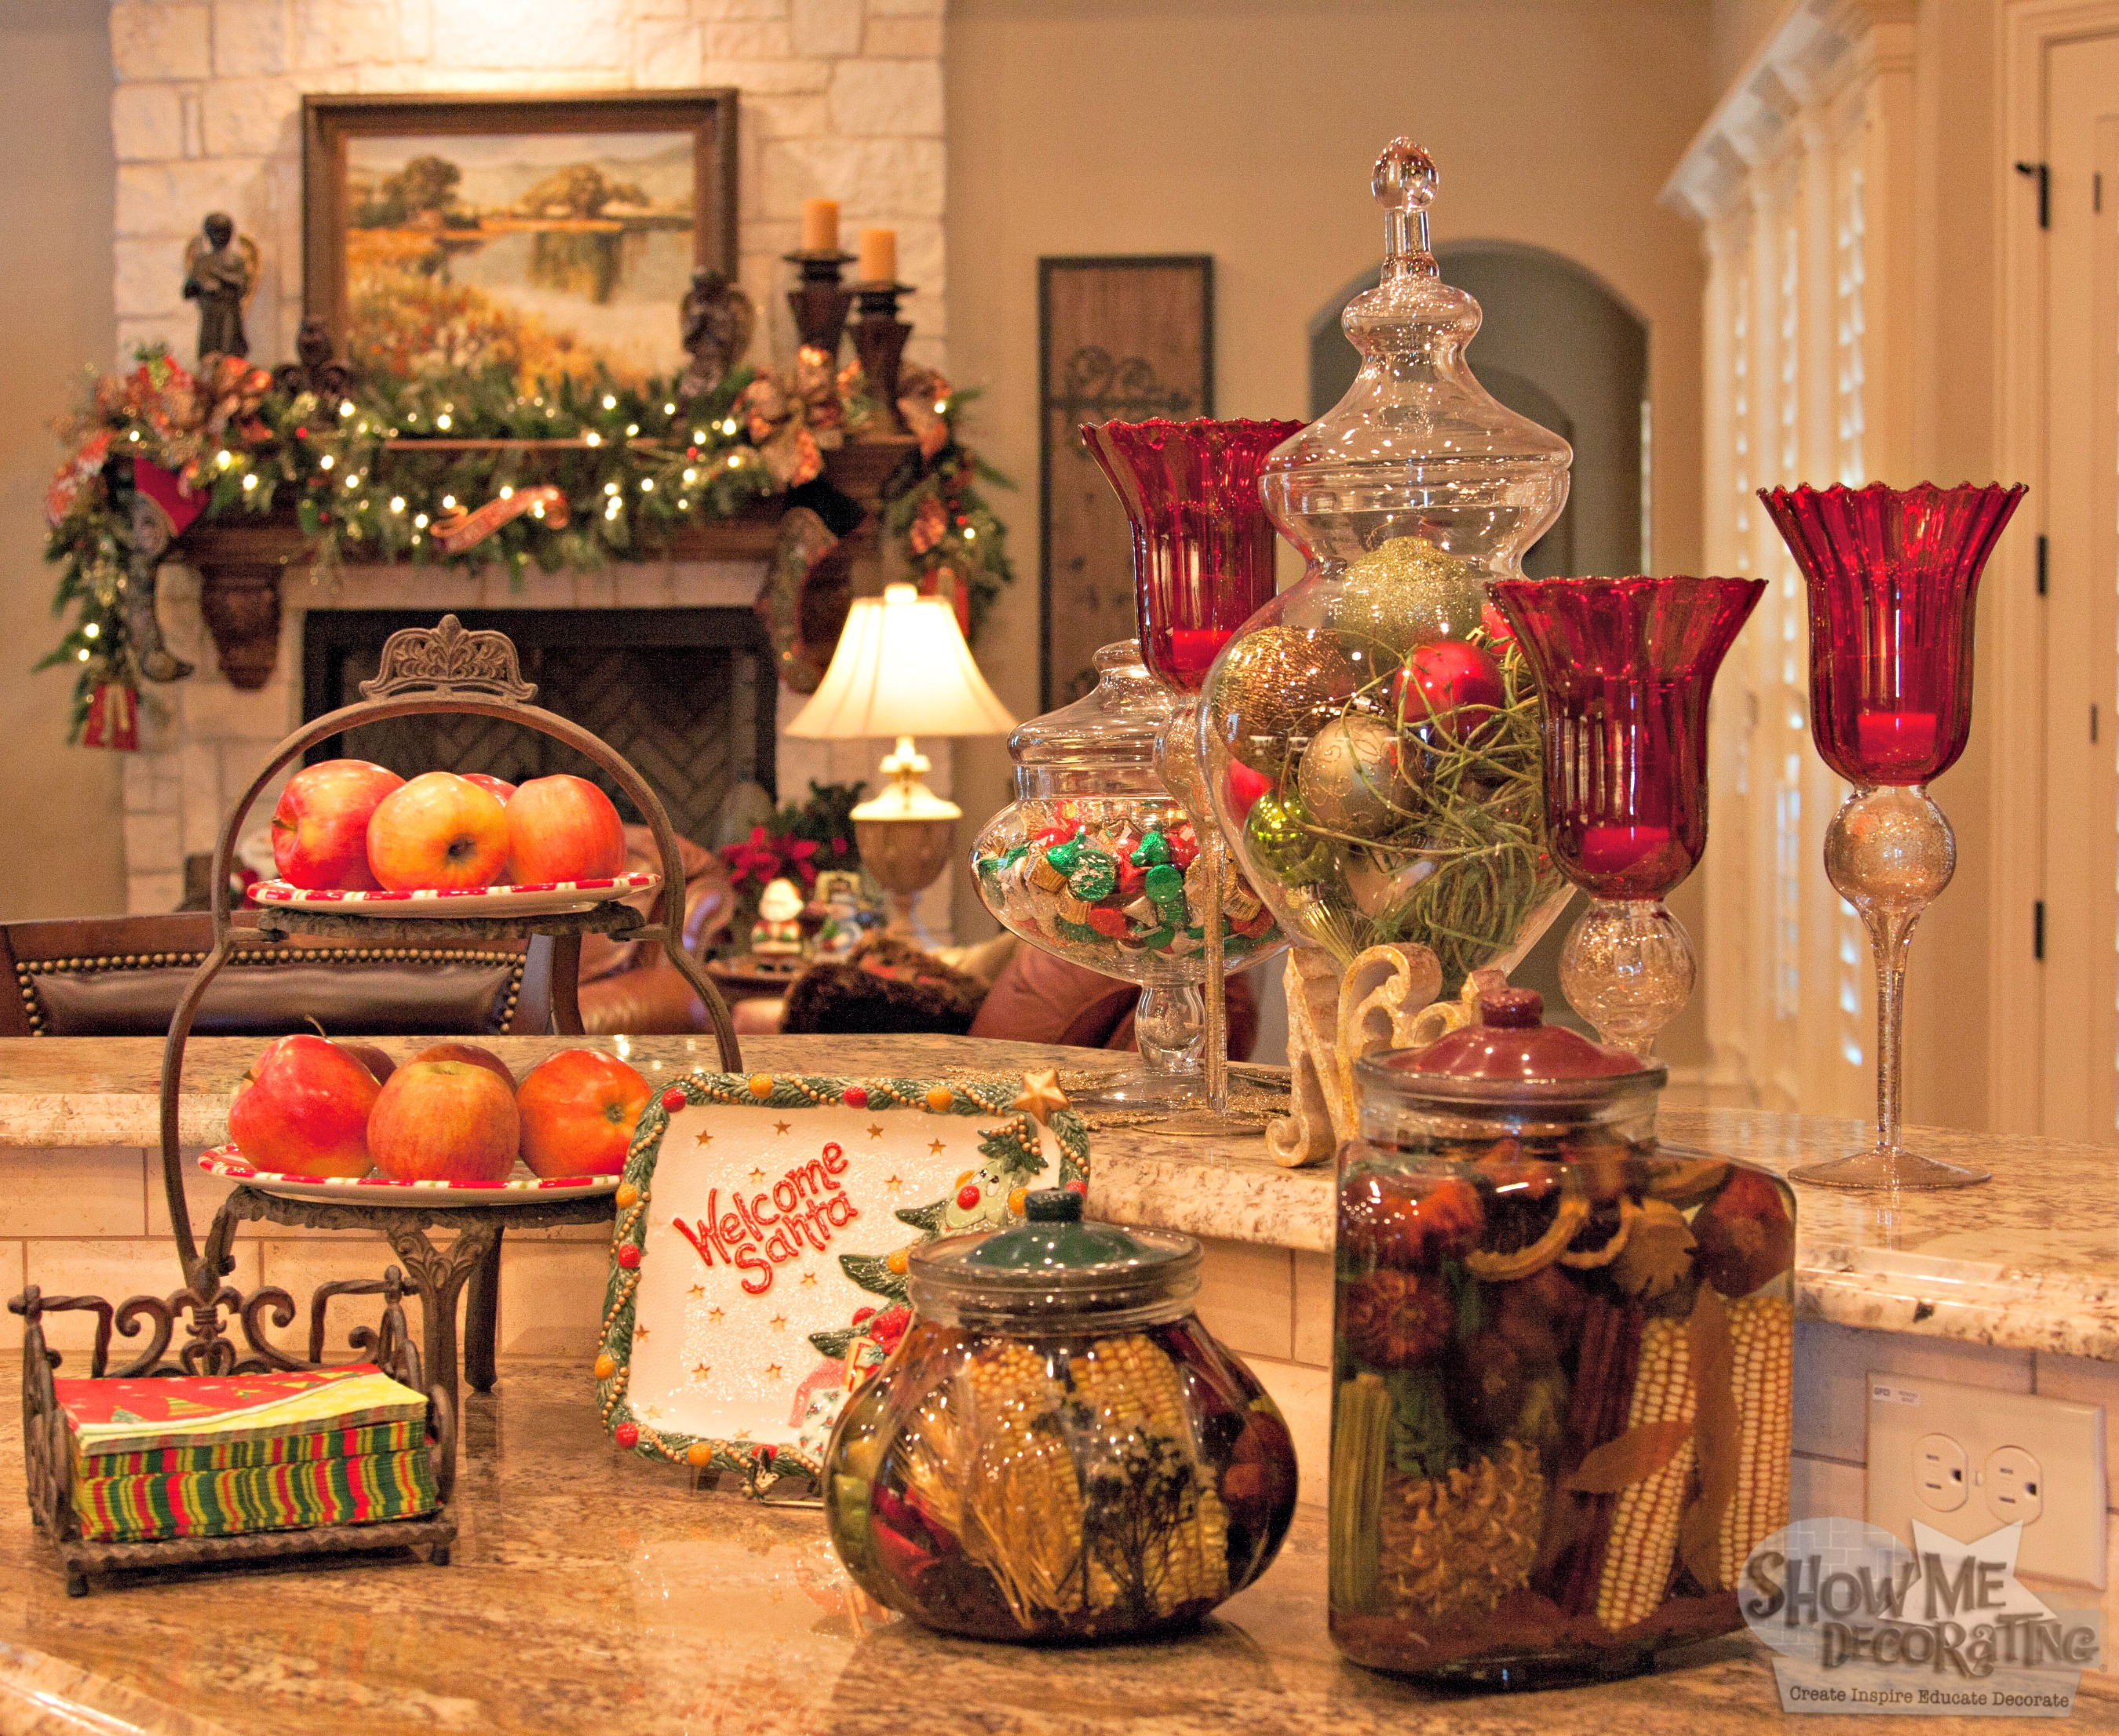 Show me decorating create inspire educate decorate for Seasonal decorations home